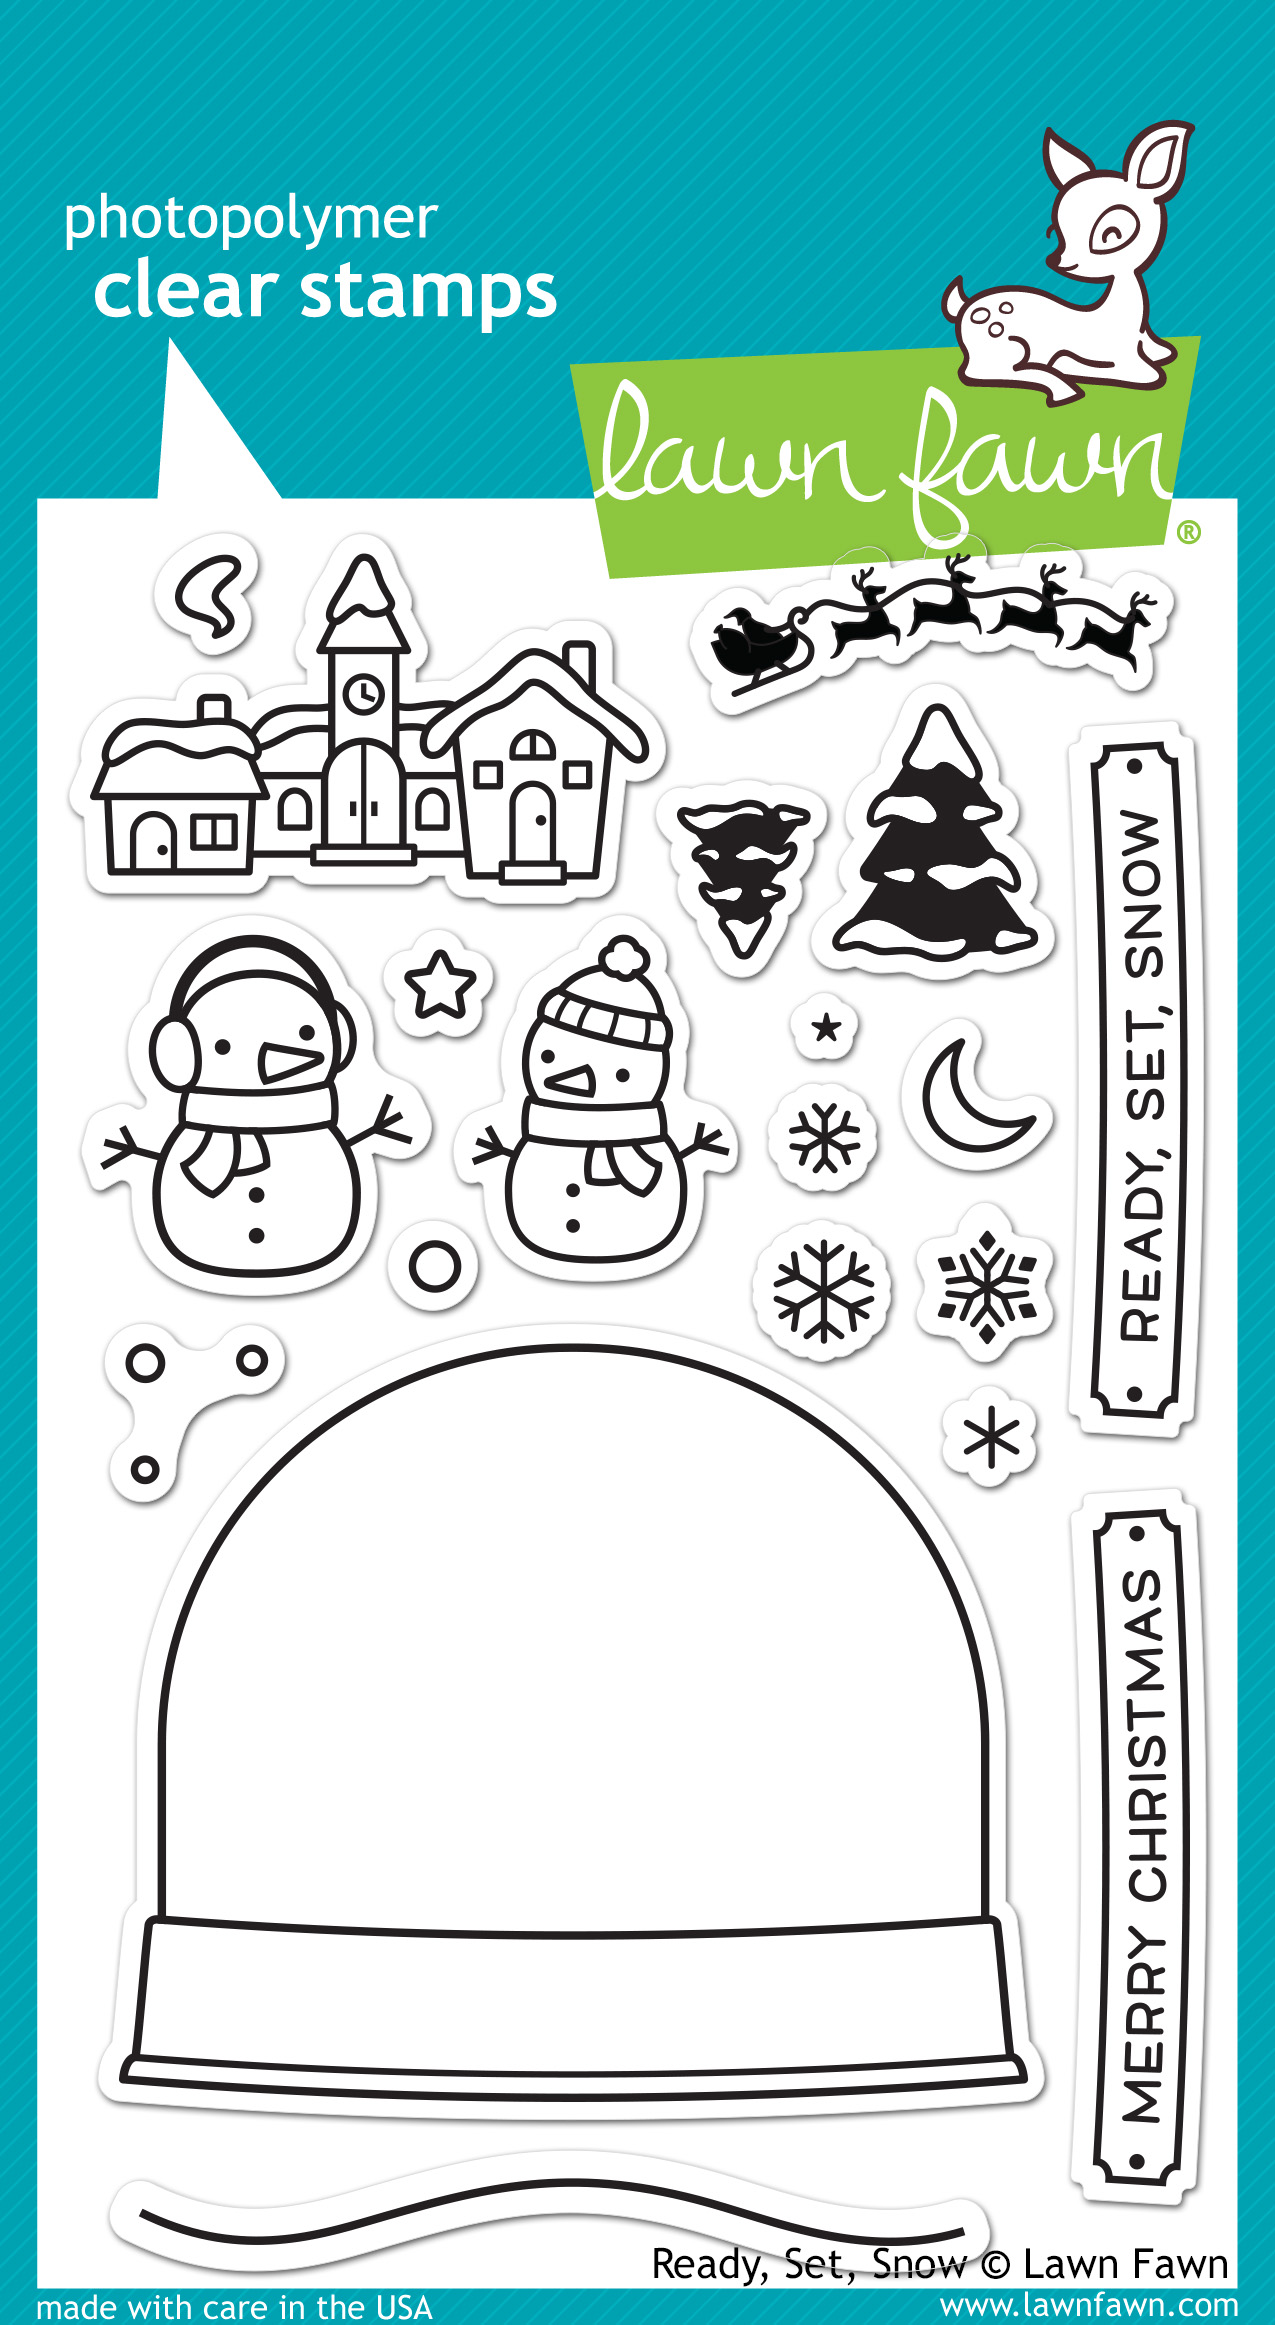 christmas lawn fawn clear stamps ready set snow lawn fawn clear stamps